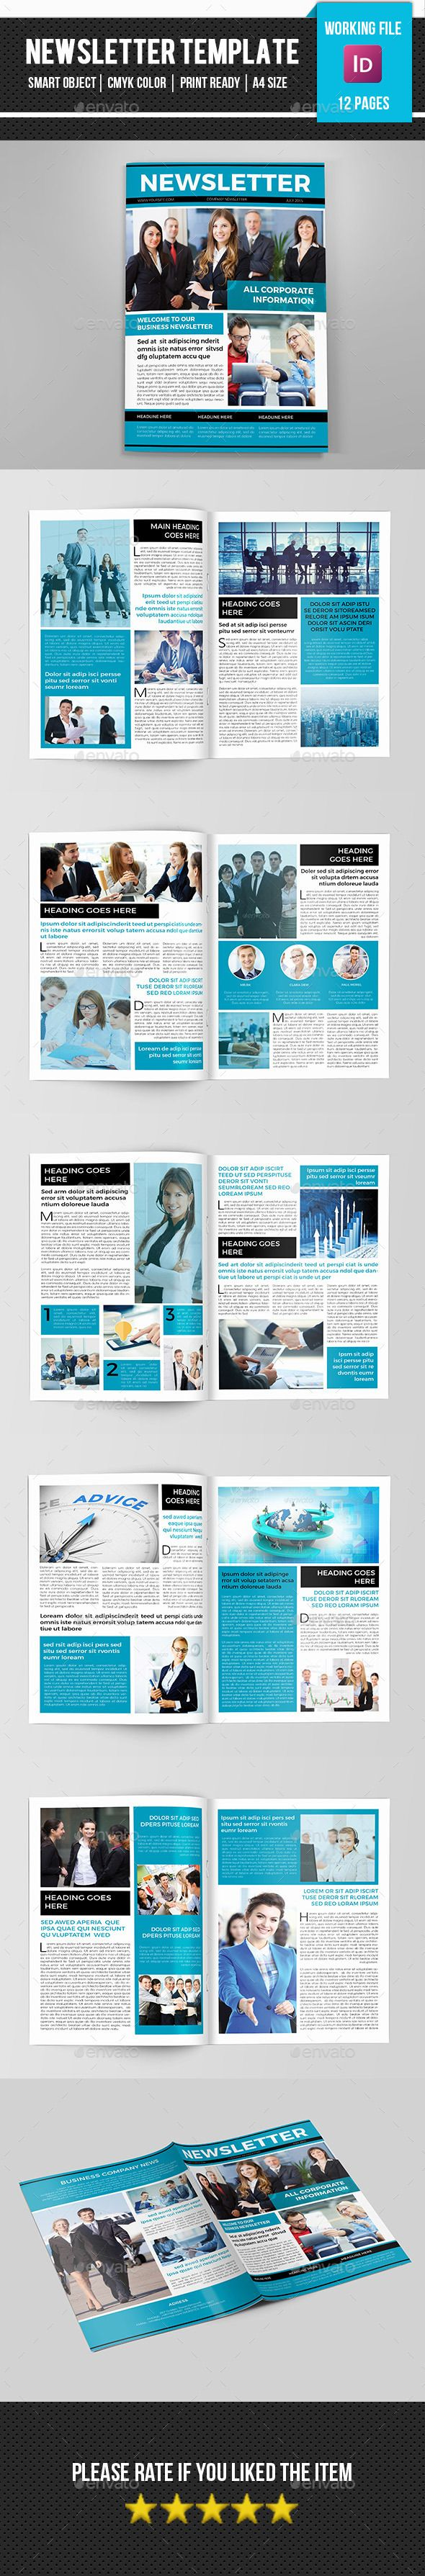 corporate newsletter v08 - Newsletter Design Ideas